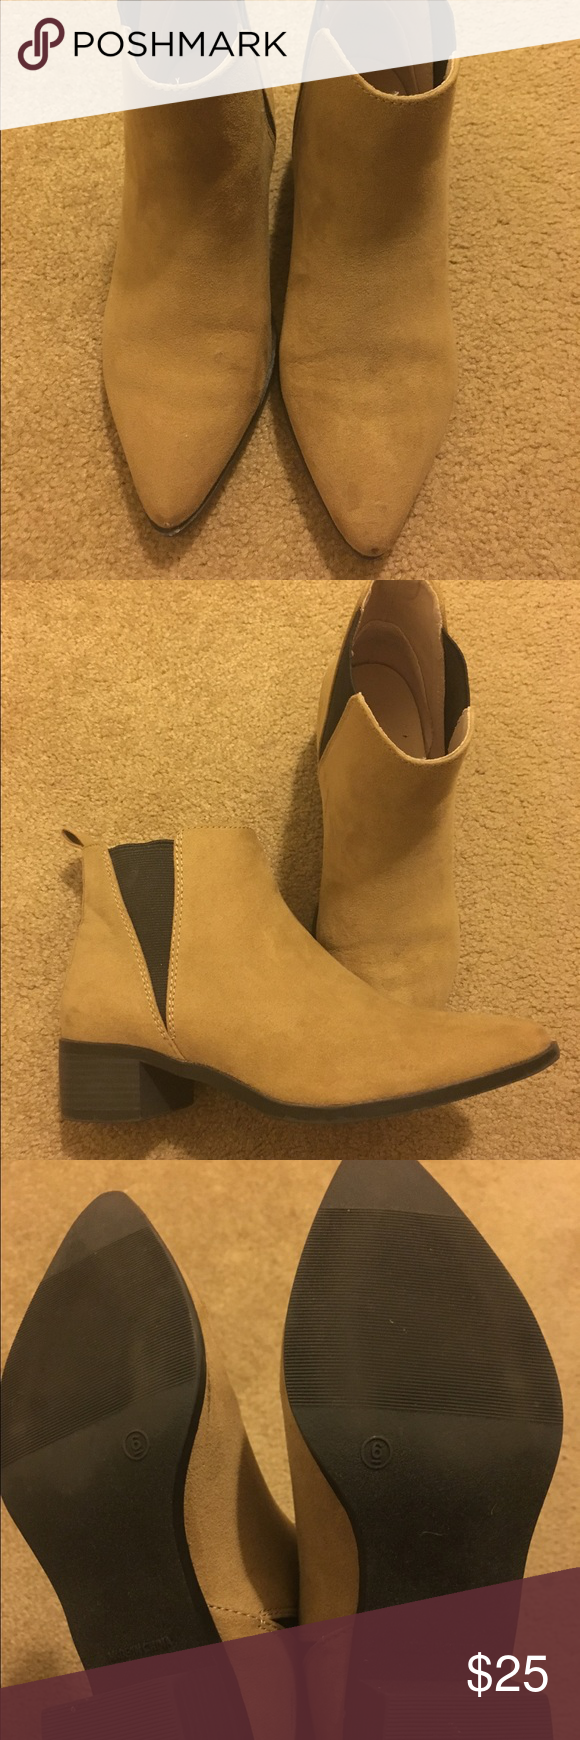 Acne style tan ankle boot Brand is old navy, faux suede, pointy toe ankle bootie in excellent condition! Old Navy Shoes Ankle Boots & Booties